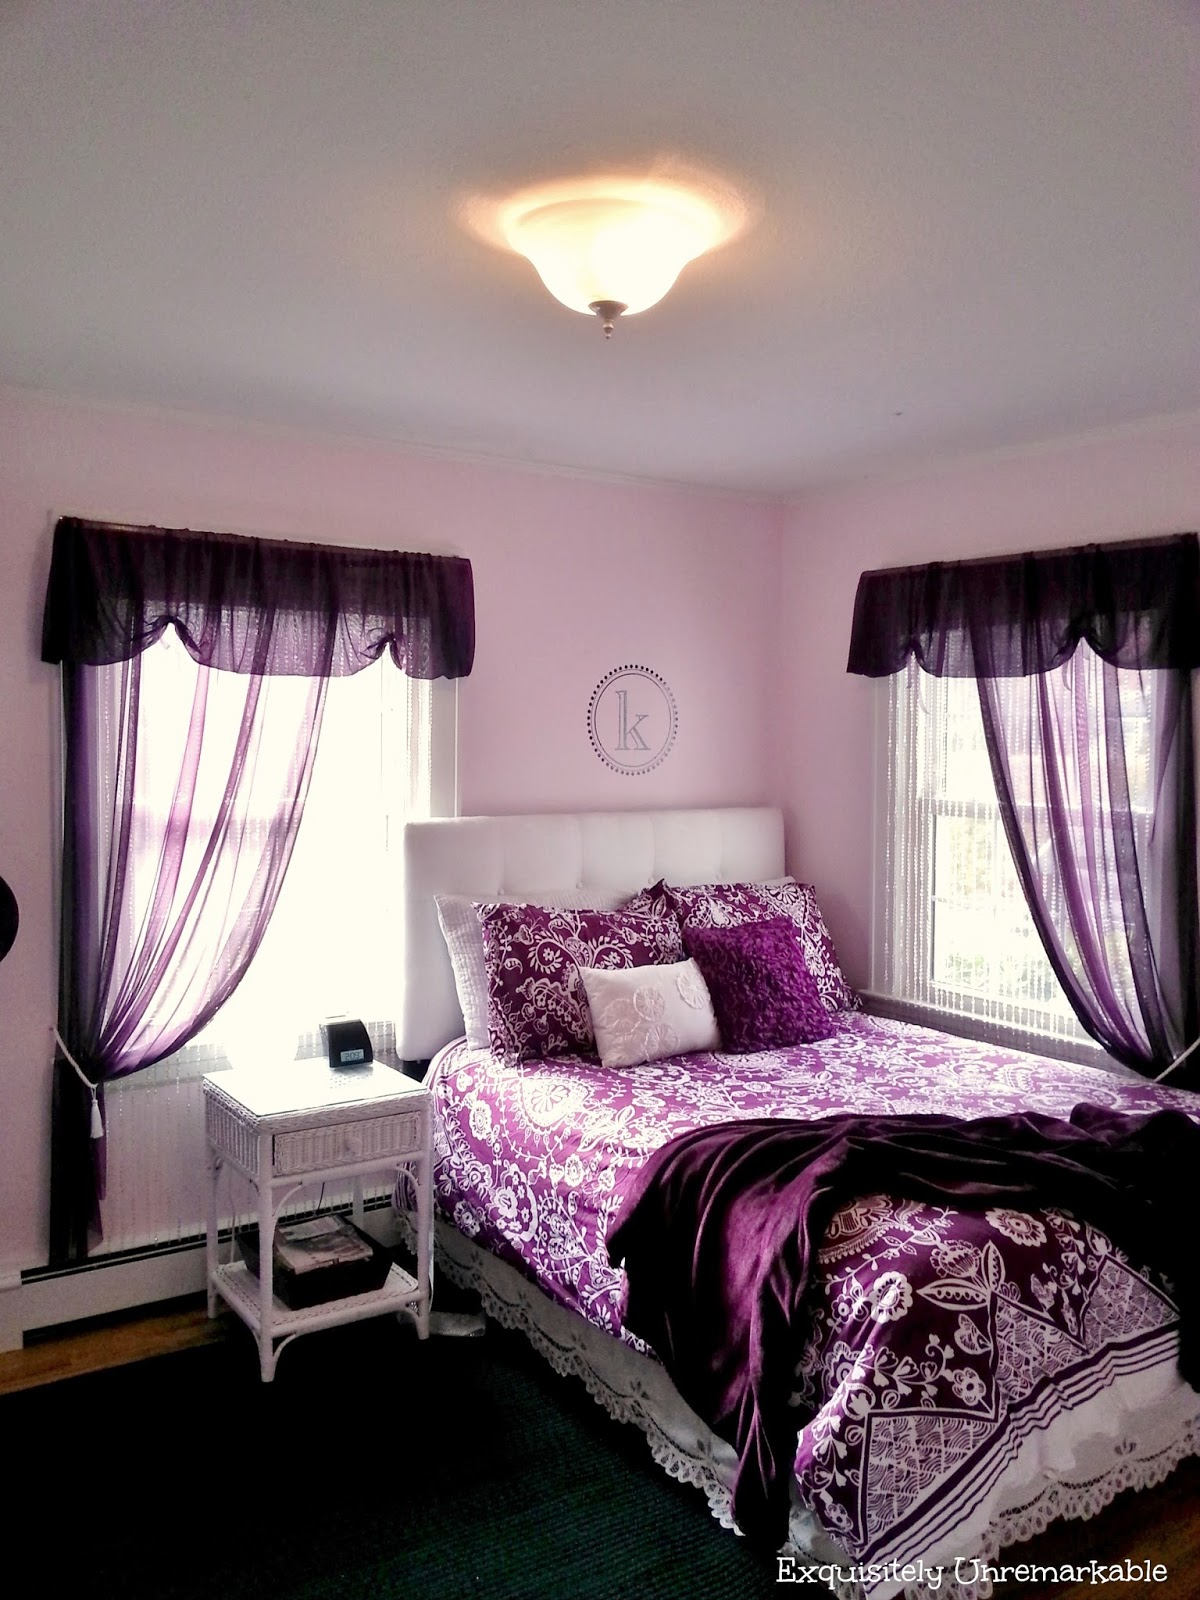 Small Red Bathroom Ideas Pretty In Purple Teen Bedroom Exquisitely Unremarkable